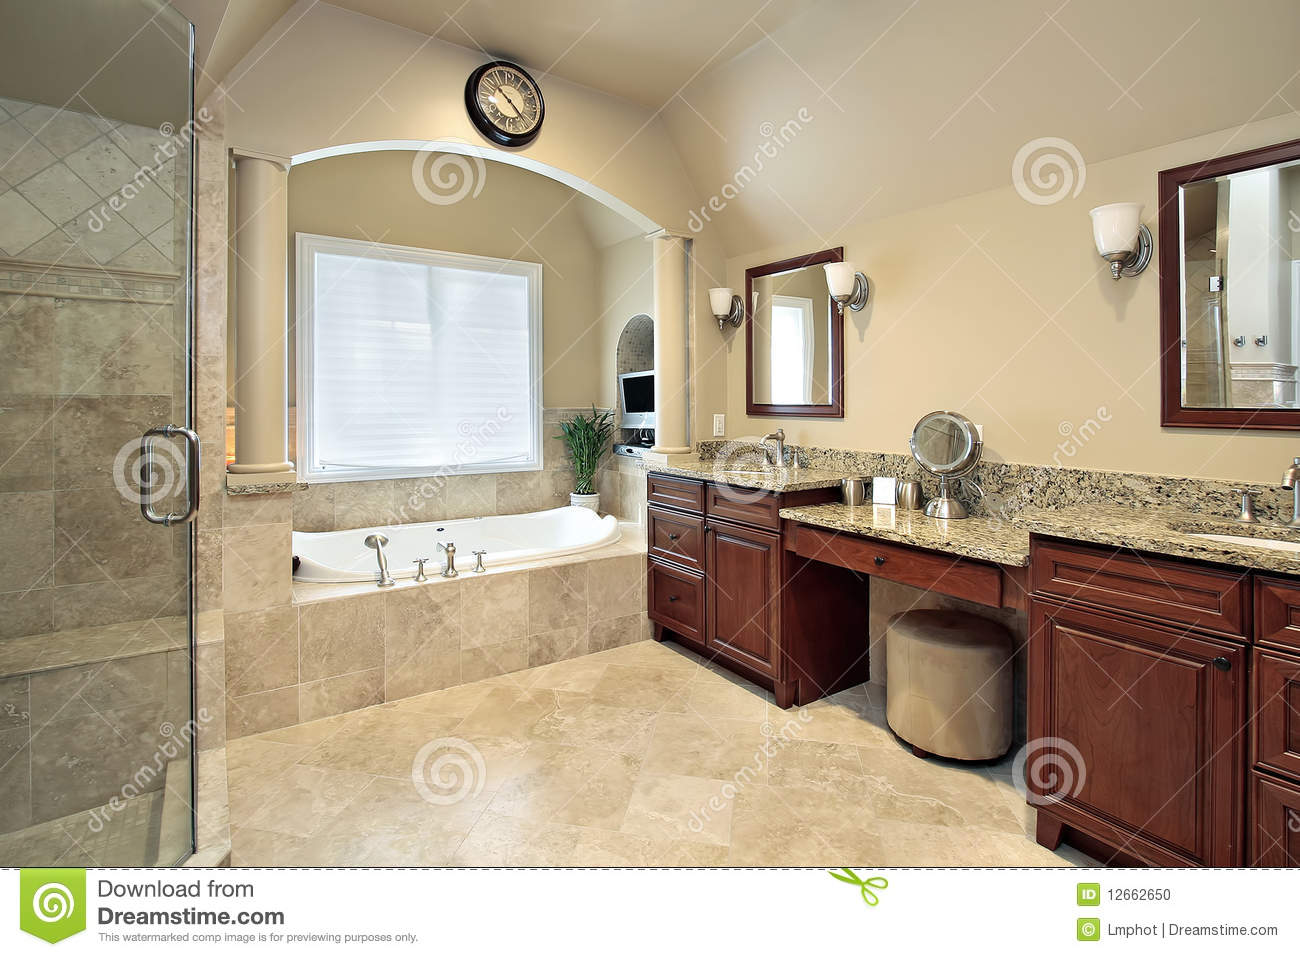 Master Bath With Tub Columns Stock Photo - Image of estate, lighting ...